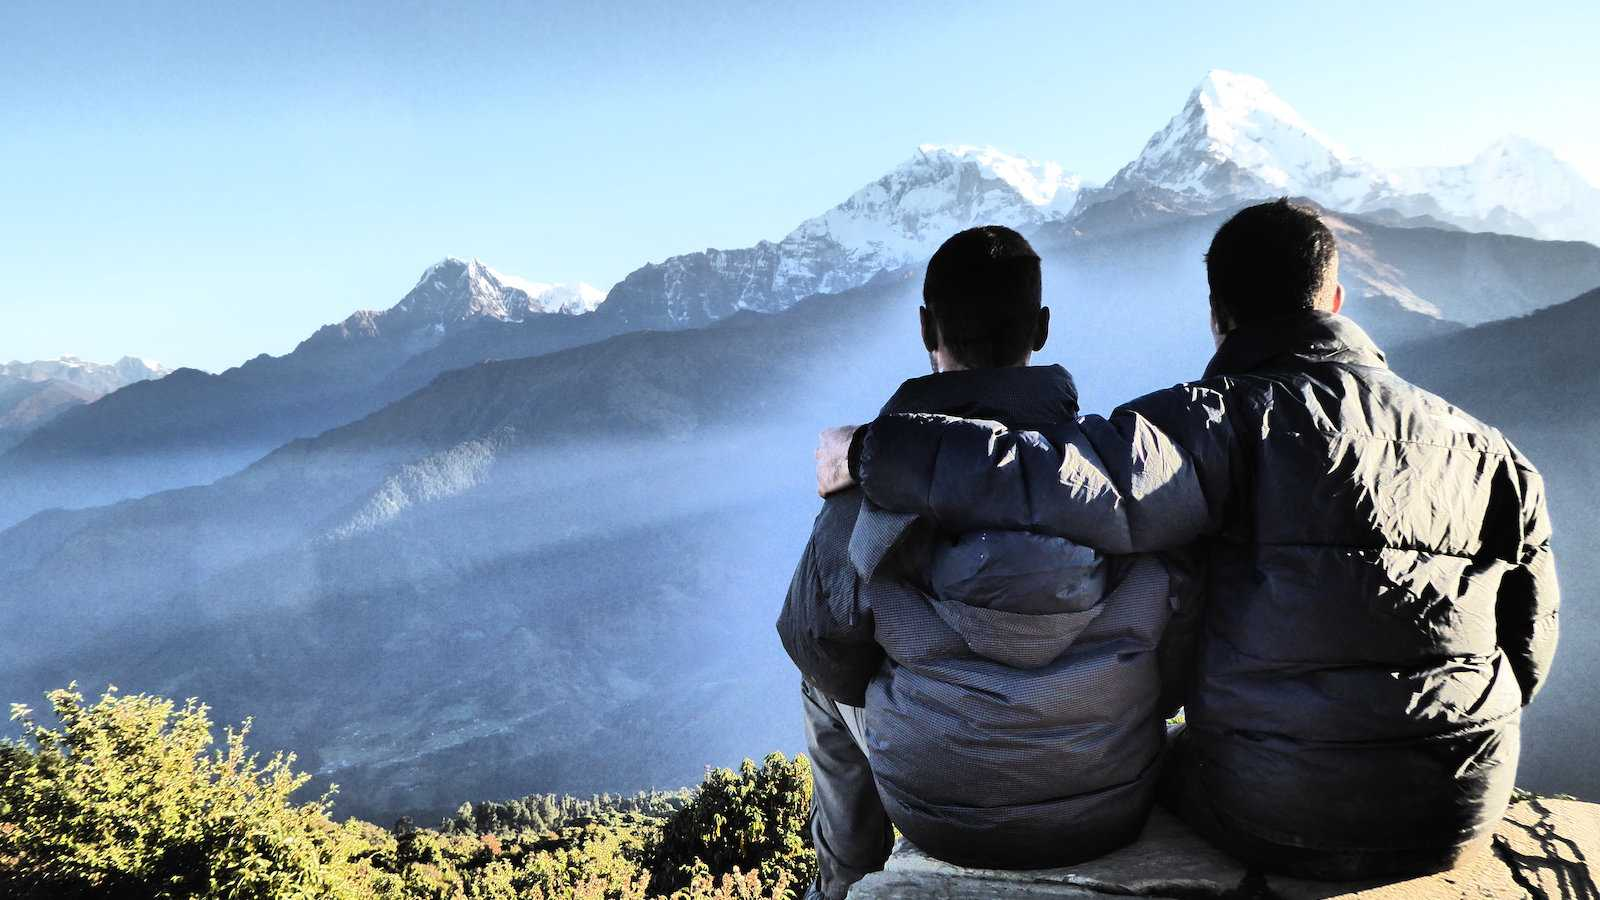 Local boy Tilak tells us what life is like in Nepal growing up gay